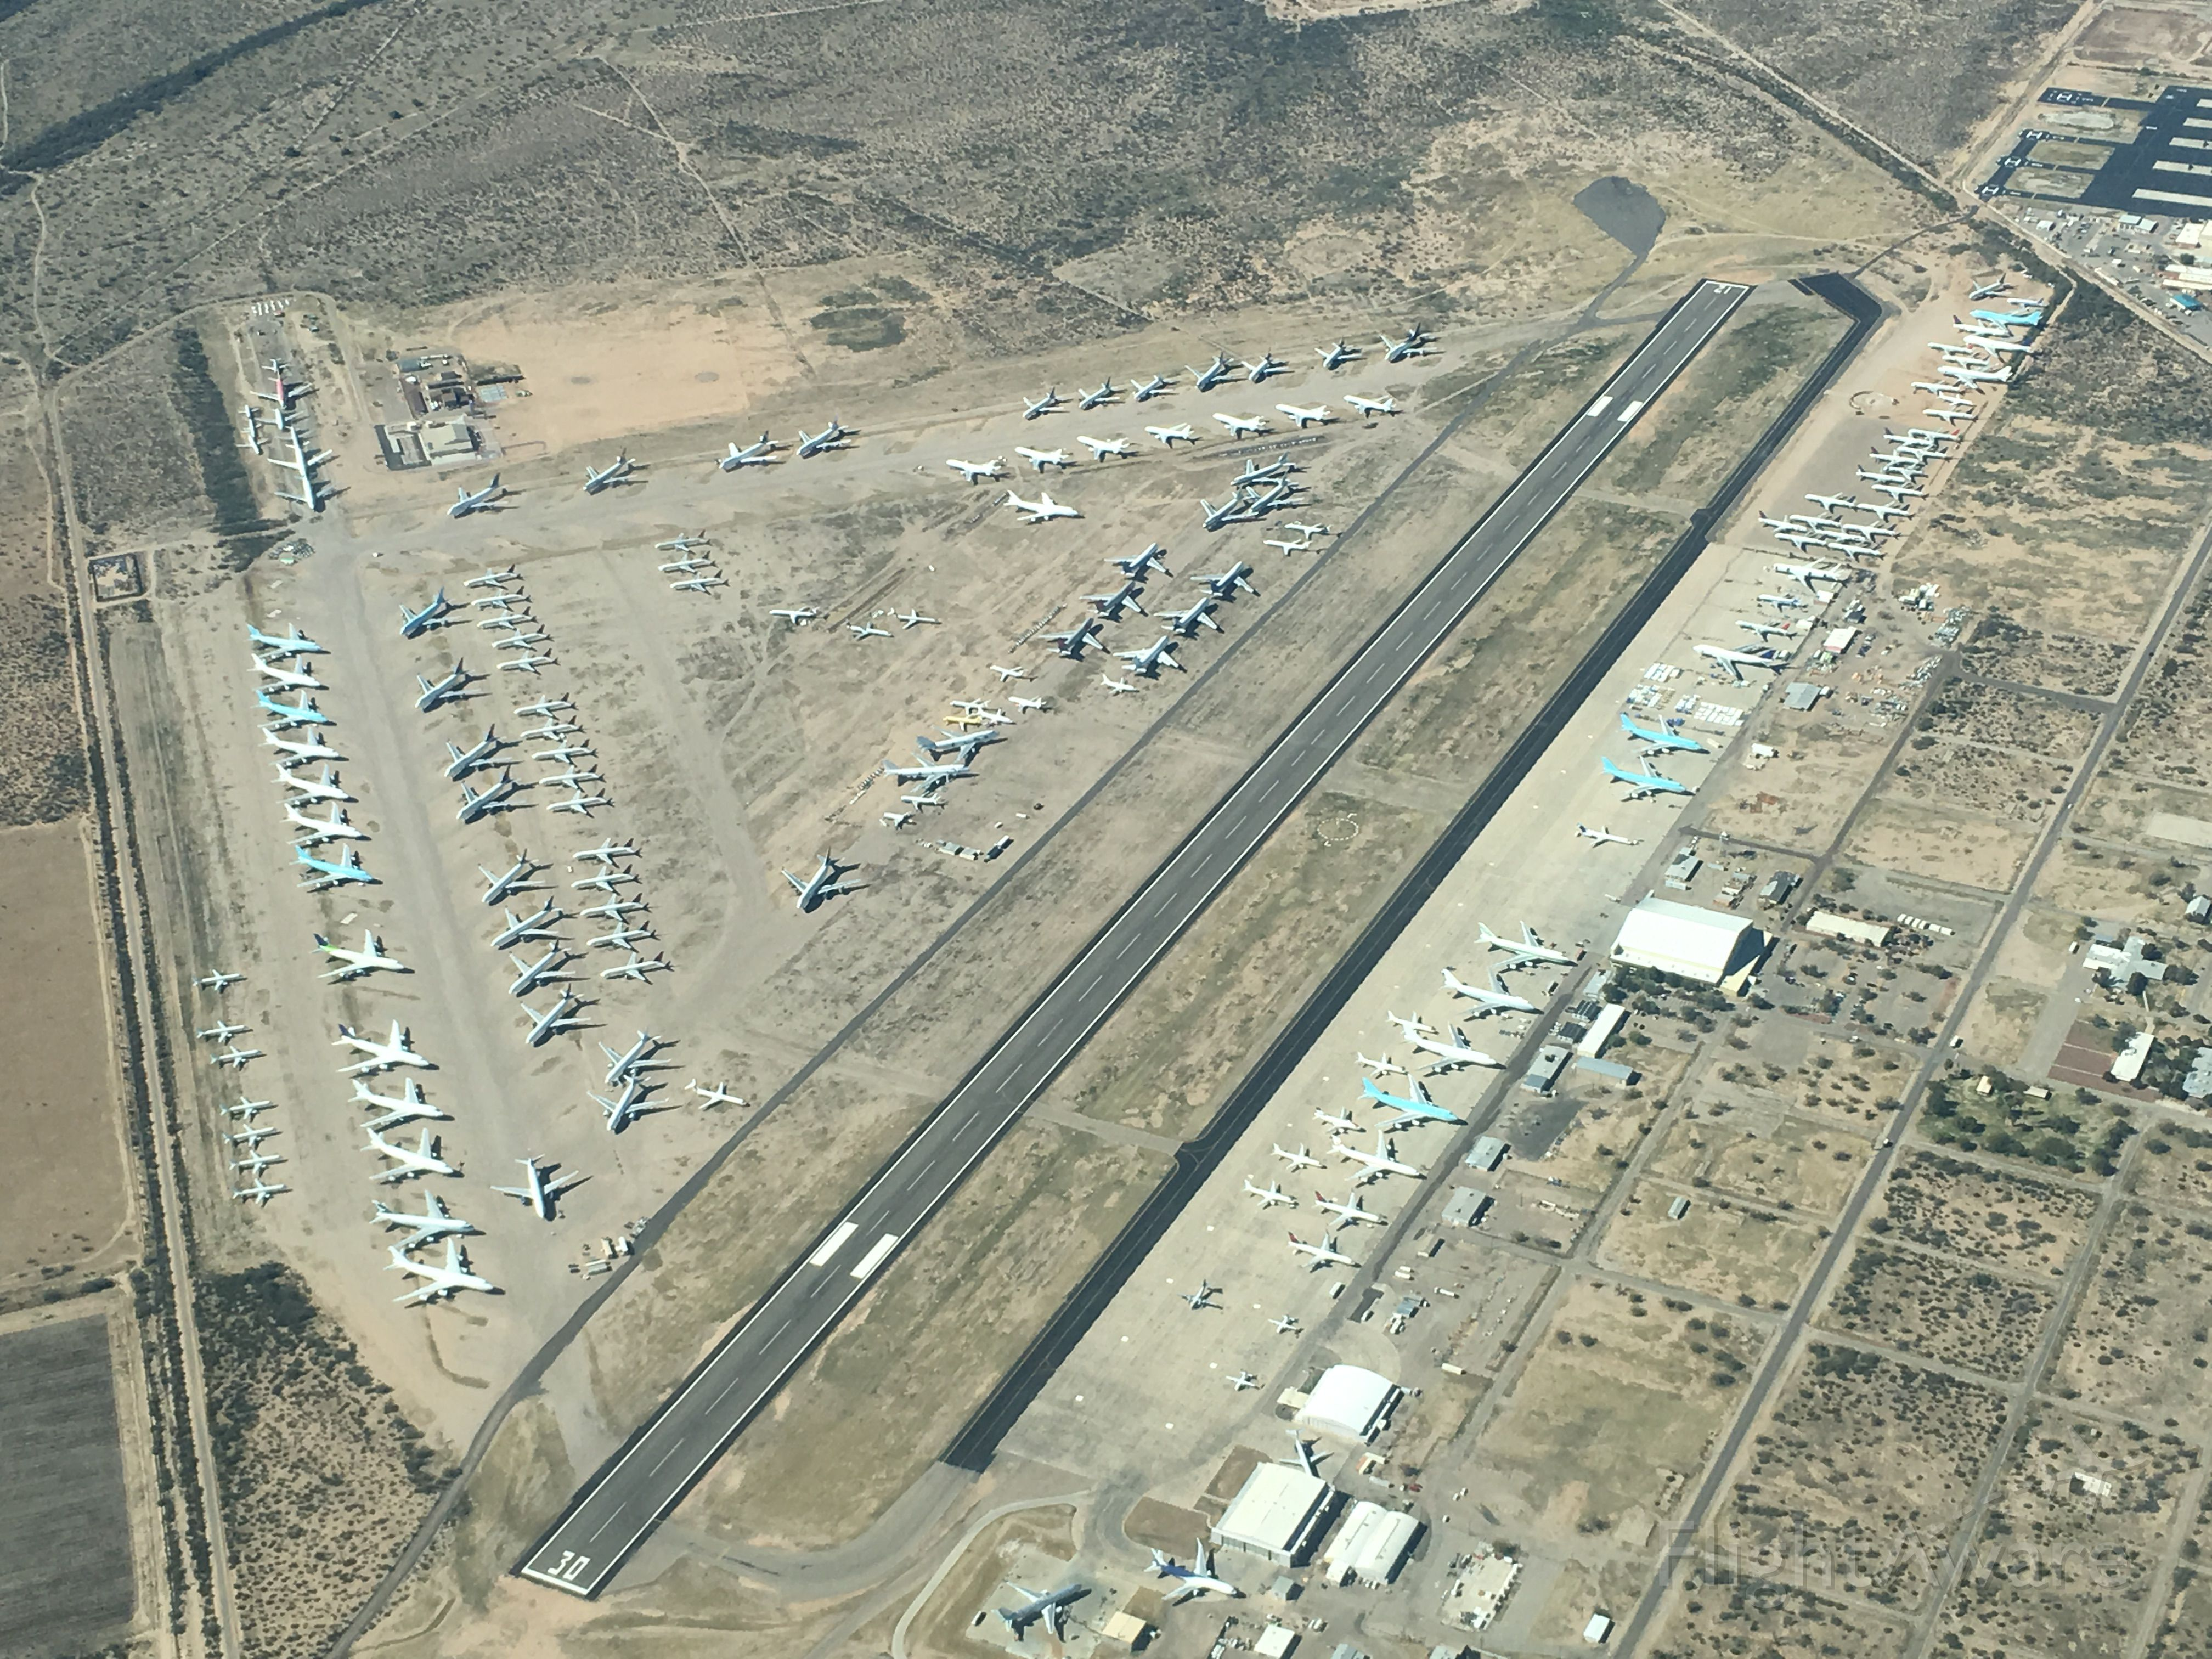 — — - Pinal Airpark - February 6, 2016